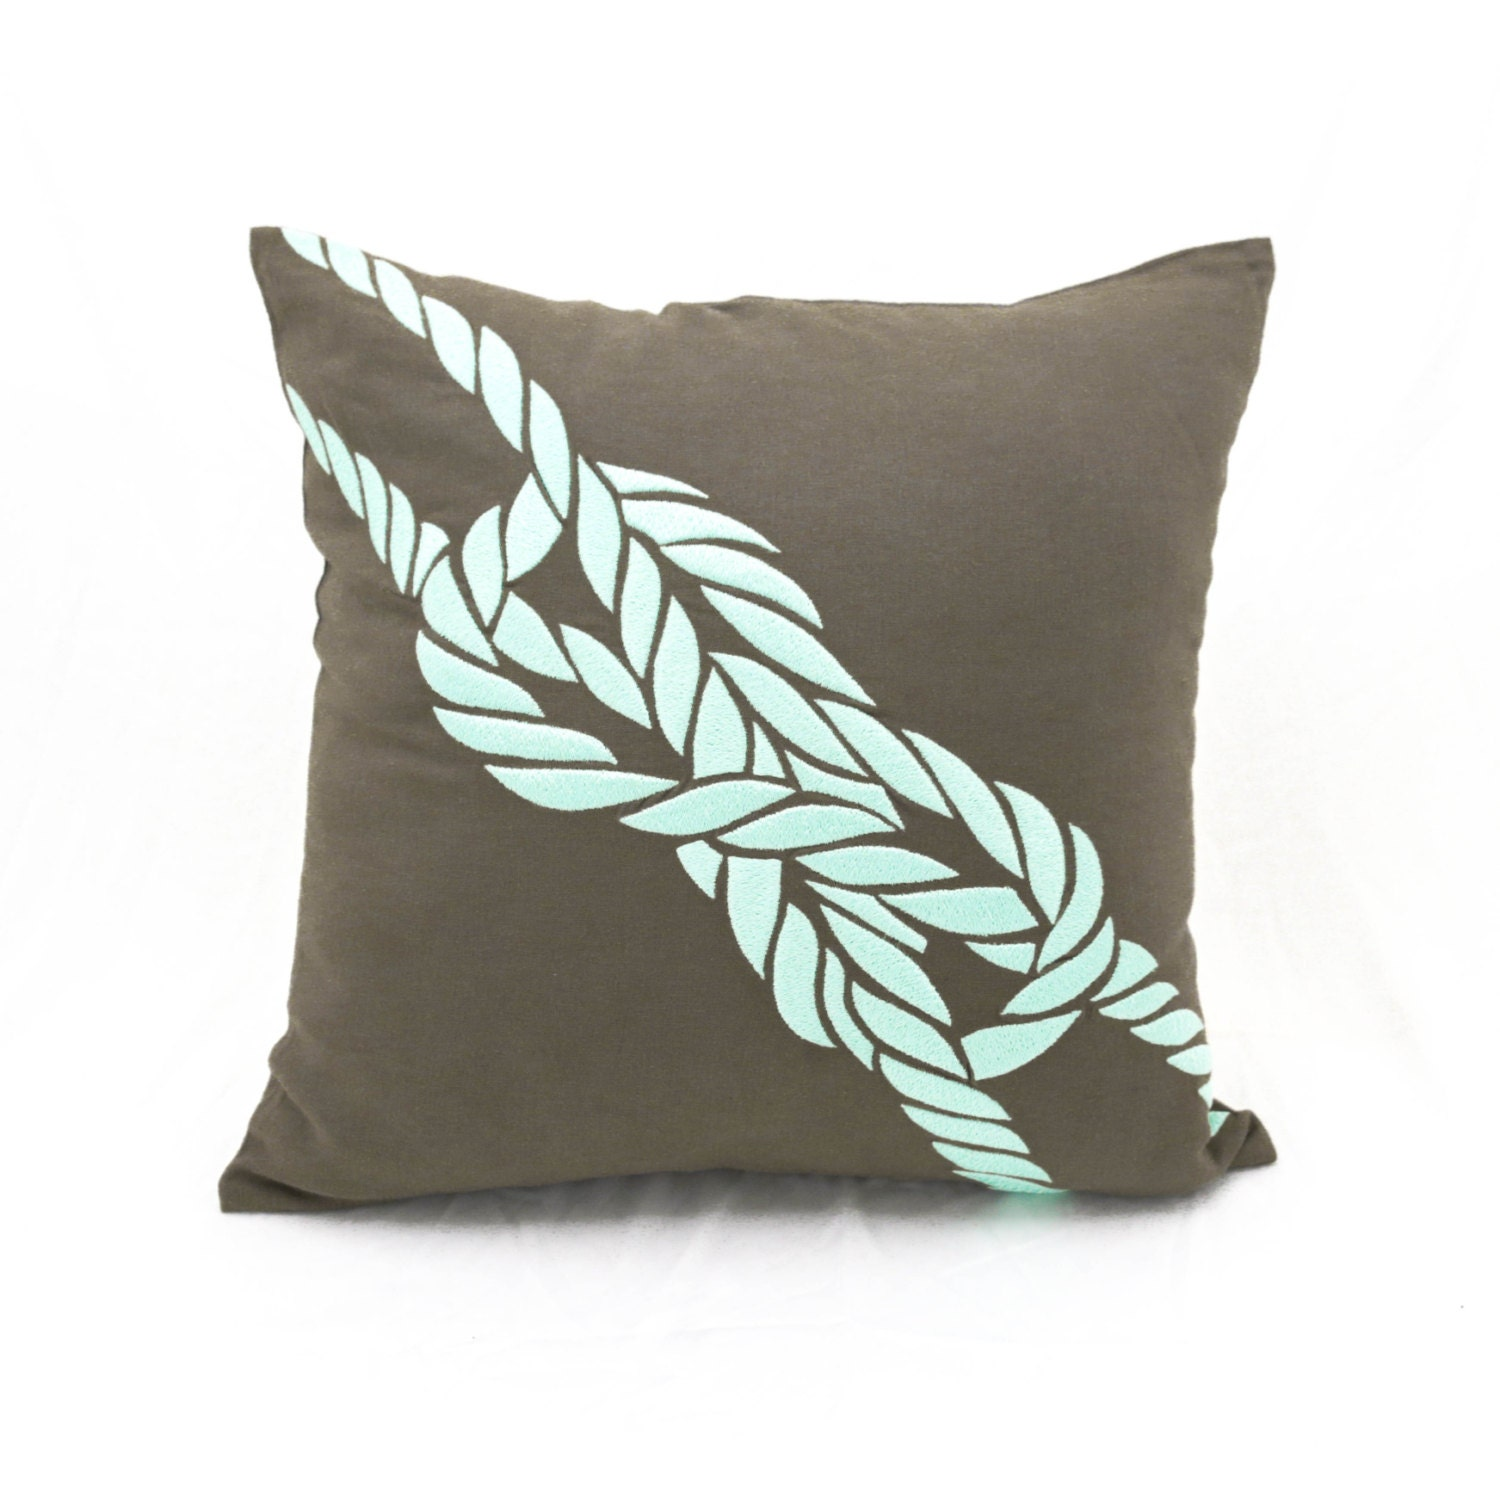 Nautical Coastal Throw Pillows : Rope Throw Pillow Cover Nautical Decor Taupe Brown Linen